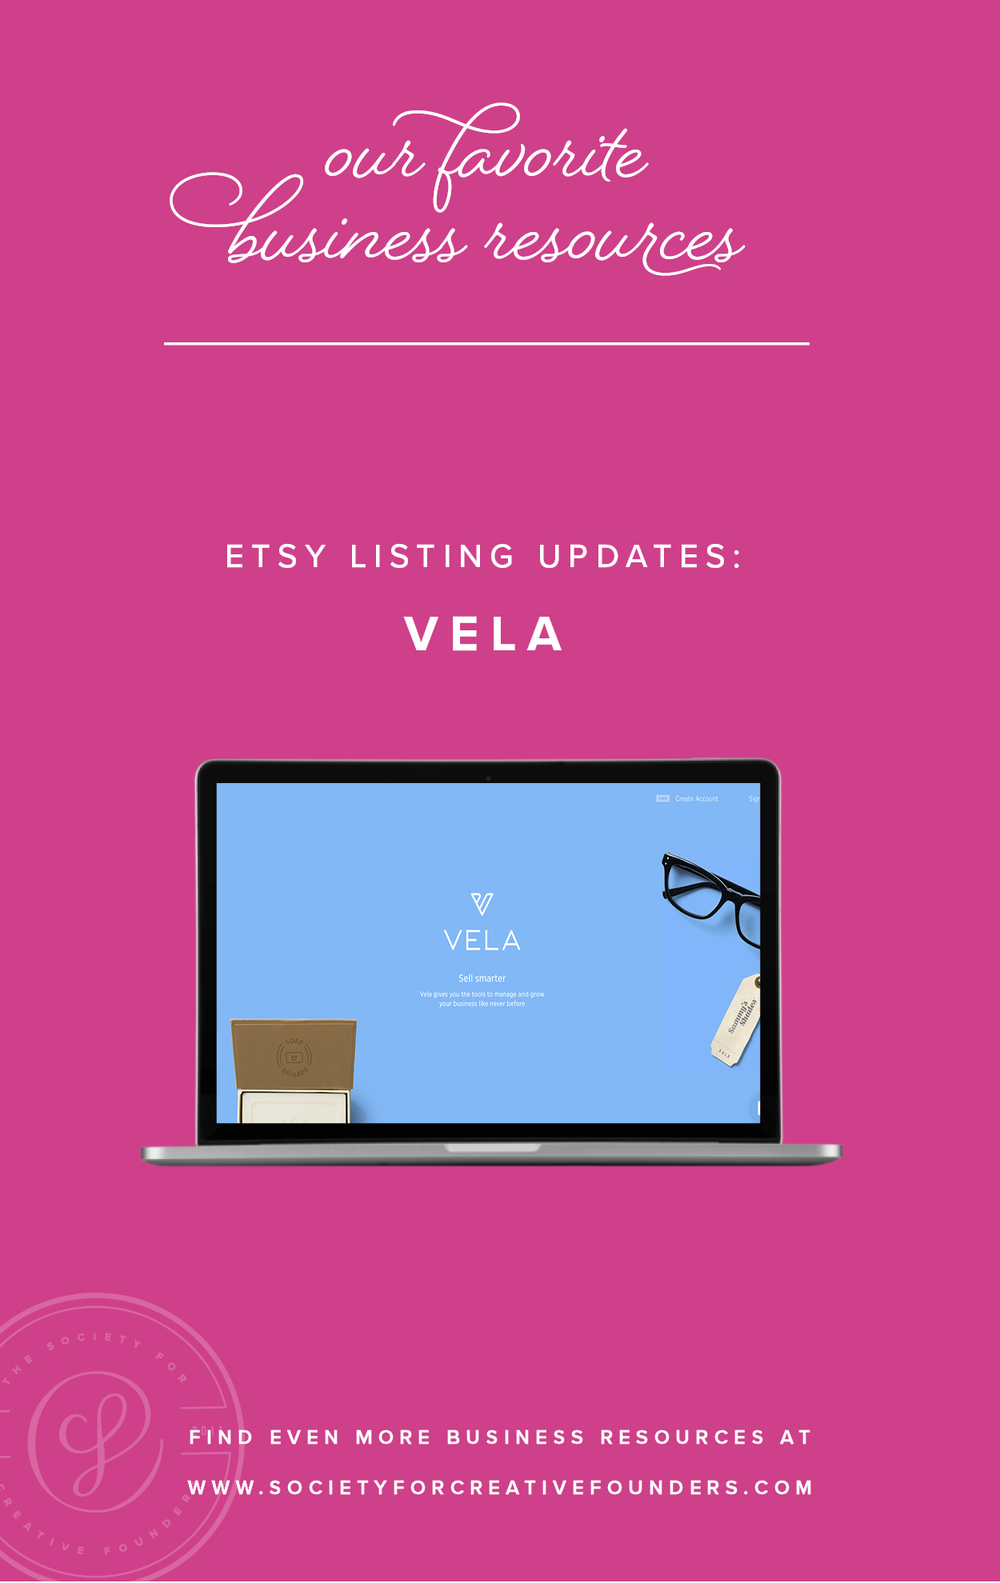 Etsy Listing Updates - Vela - Favorite Business Resources from the Society for Creative Founders